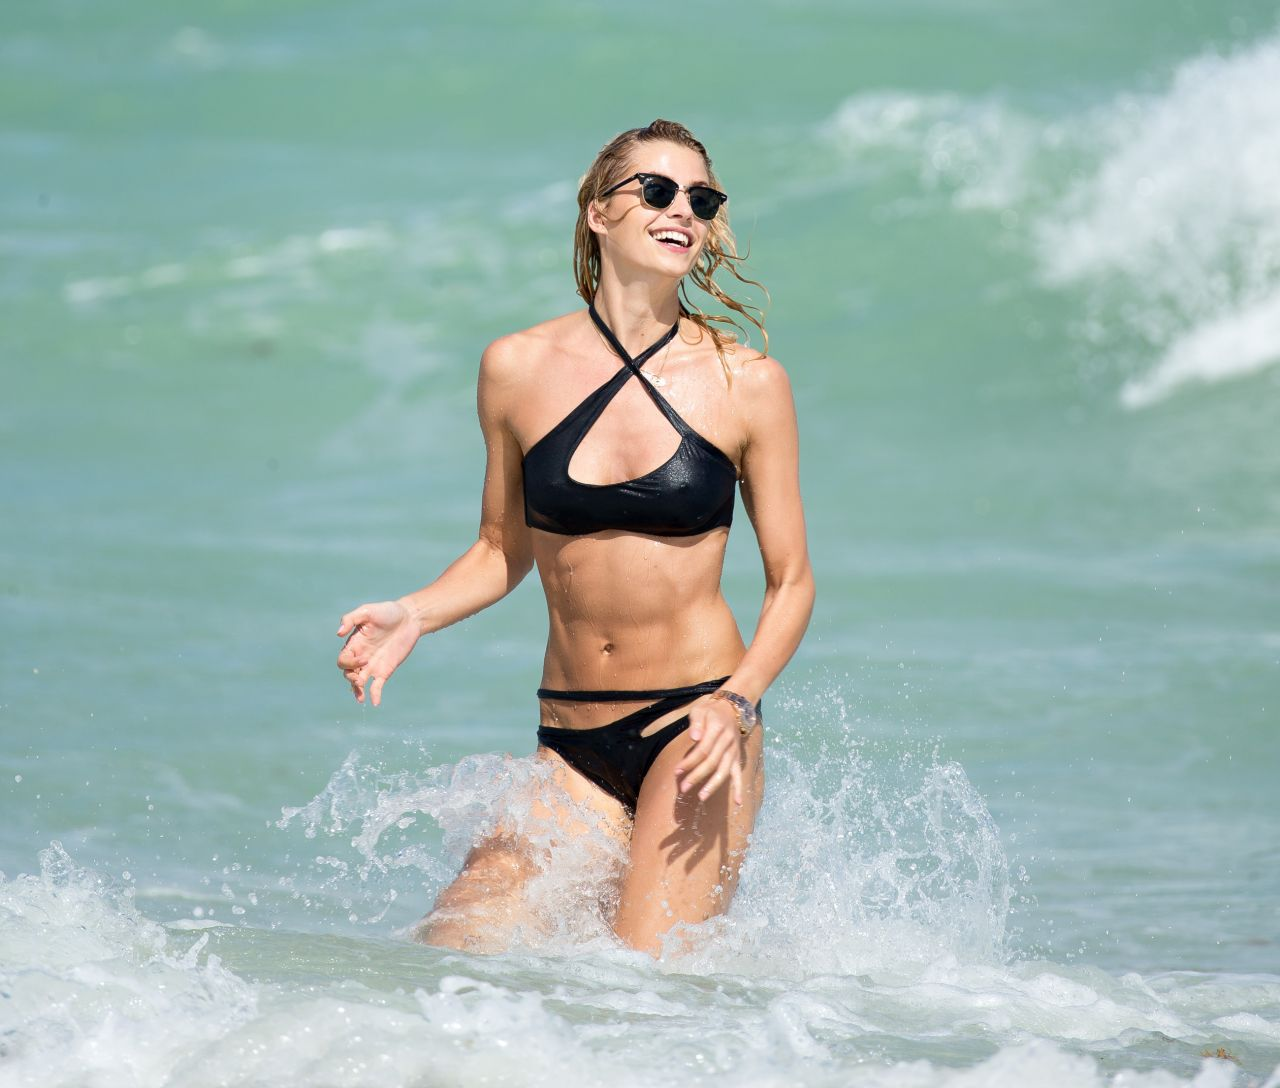 Lena Gercke In A Bikini At The Beach In Miami October 2015